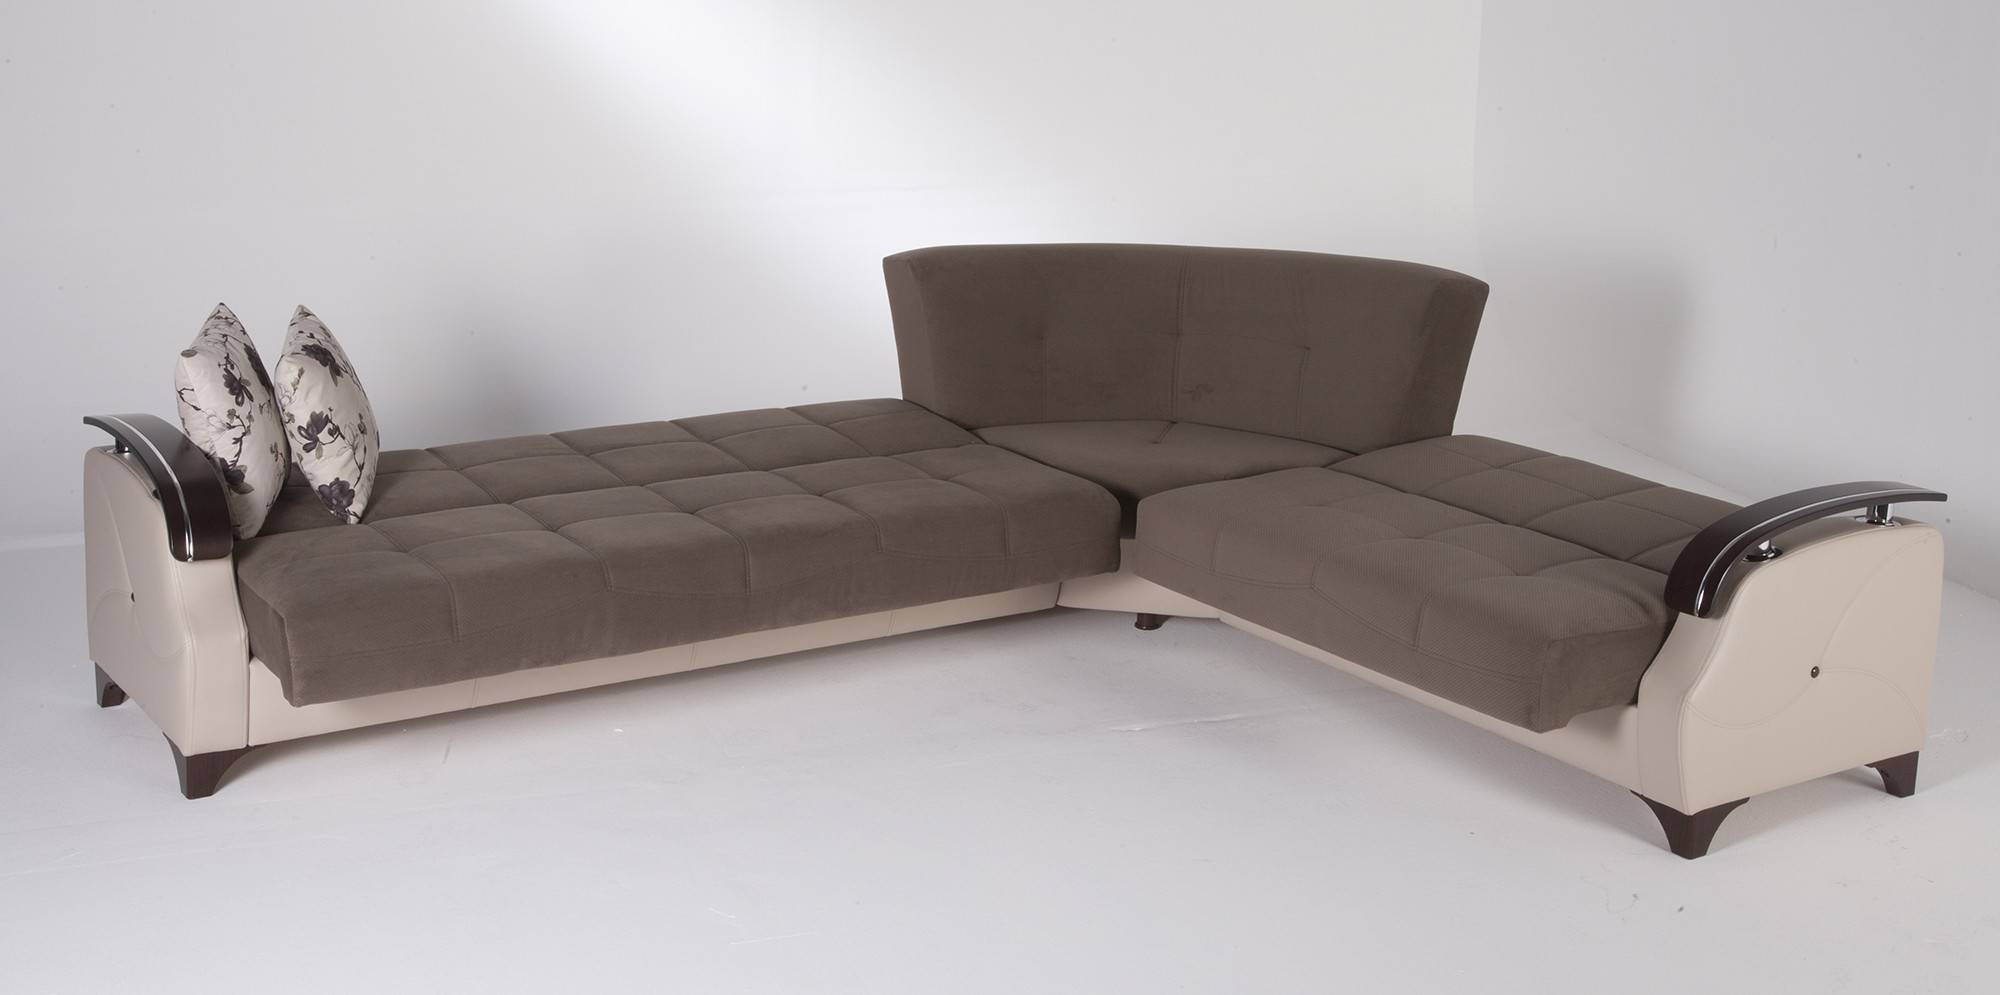 30 Best Collection of Sleeper Sectional Sofas